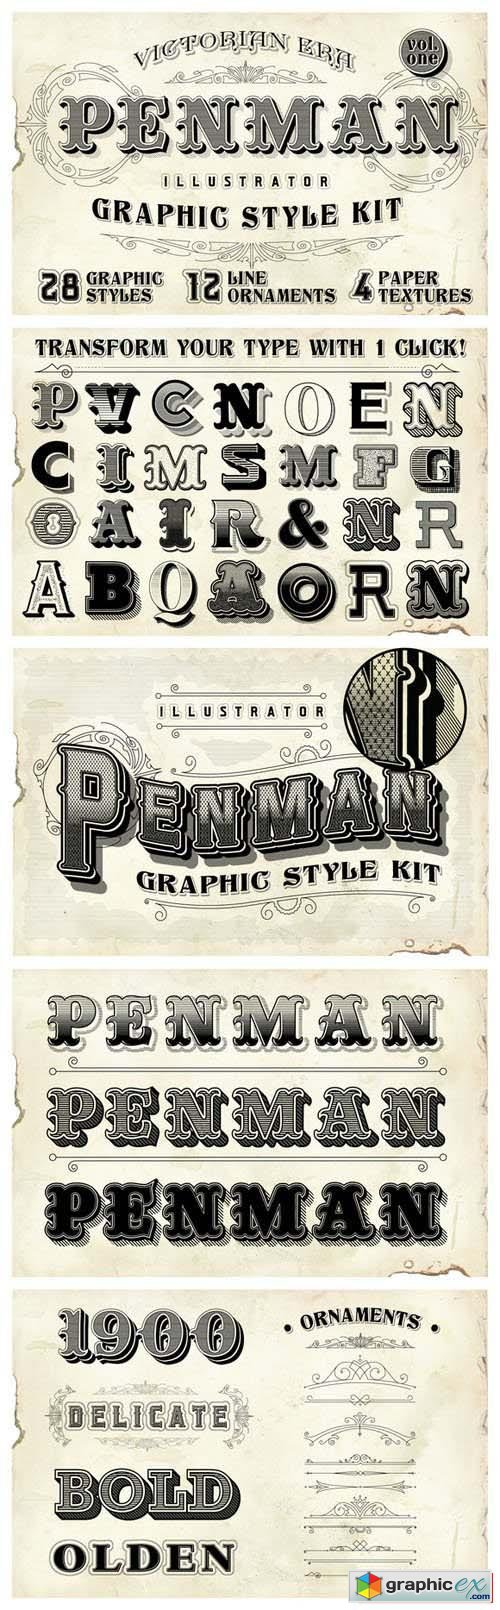 Penman Vintage Graphic Style Kit